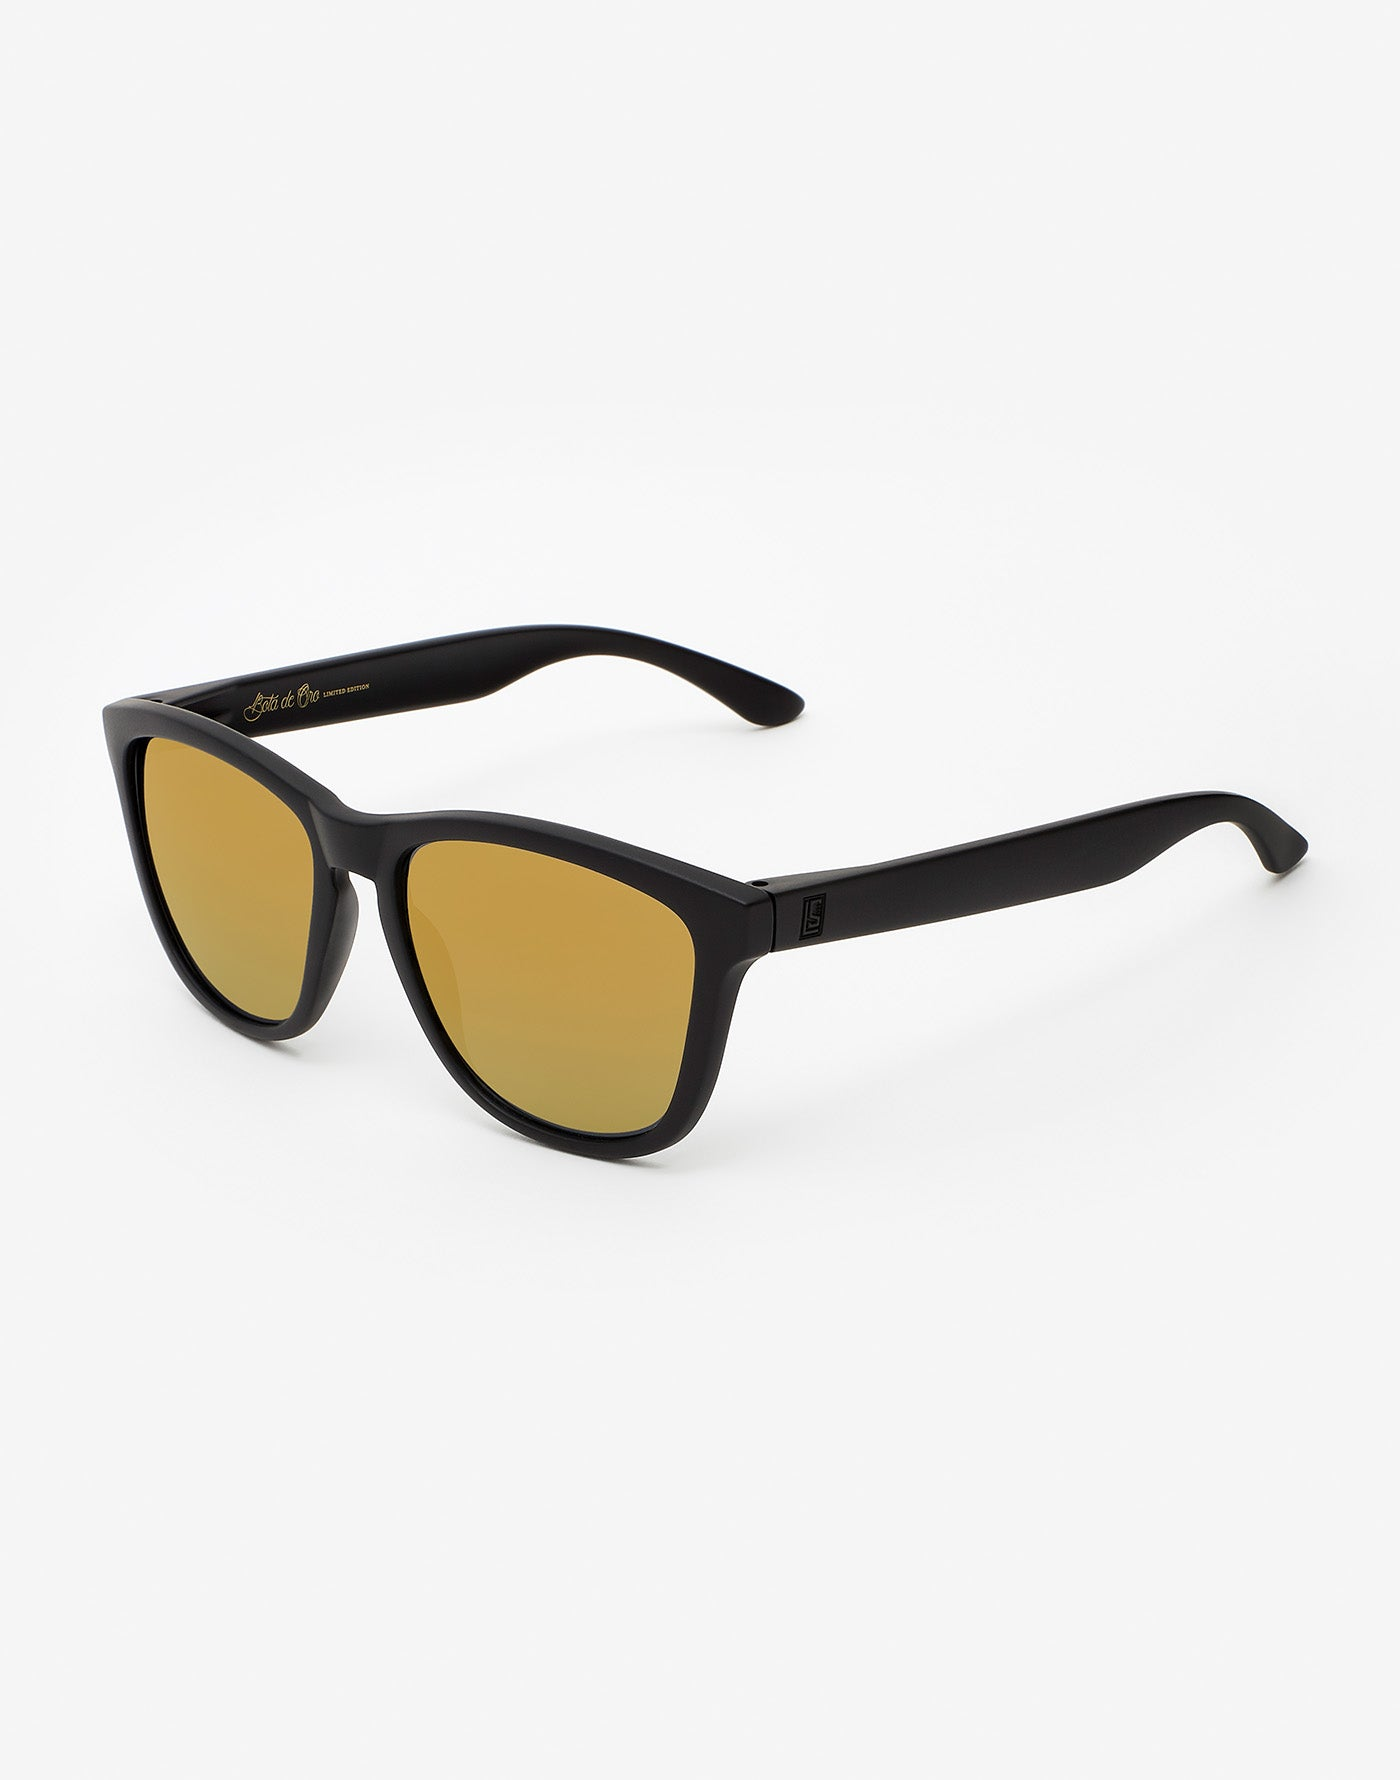 83d75805684 ₪ Sunglasses Hawkers x LUIS SUÁREZ ₪ GOLDEN BOOT ₪